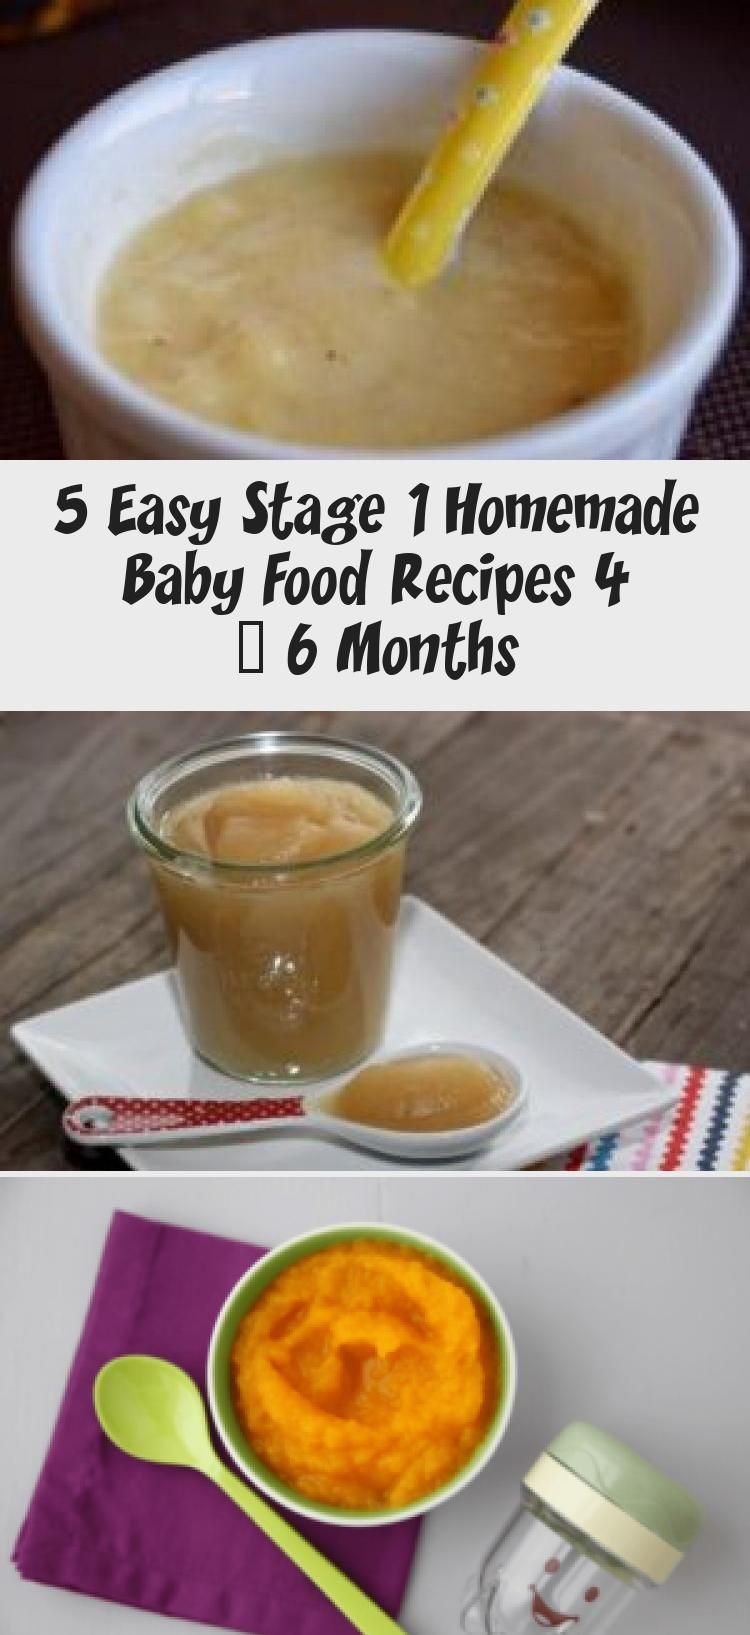 5 Easy Stage 1 Homemade Baby Food Recipes 4 - 6 Months ...